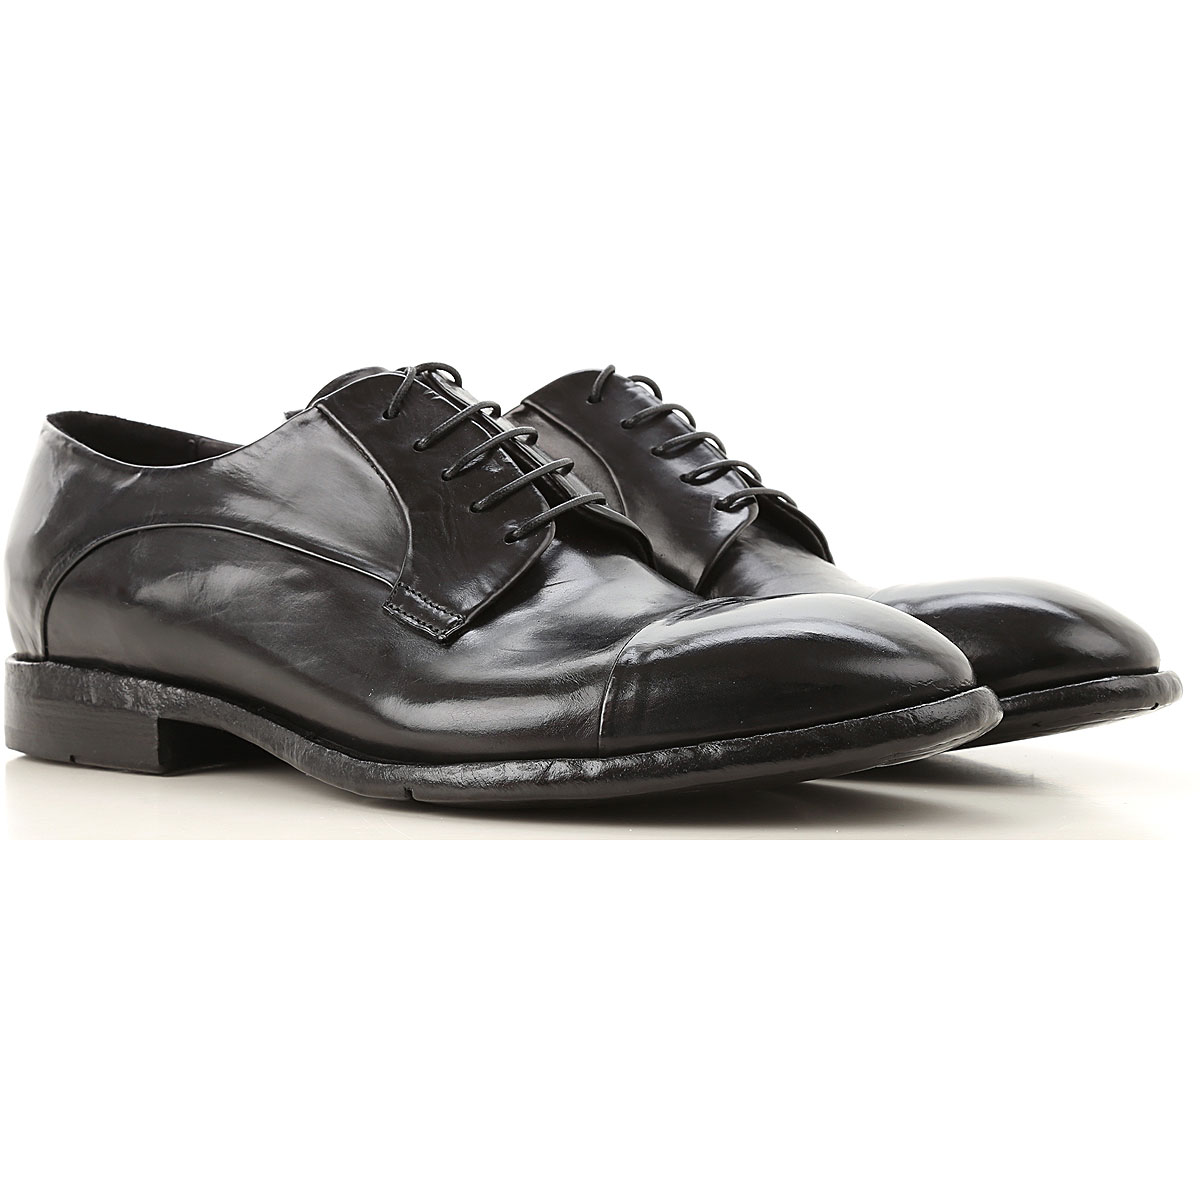 Lemargo Lace Up Shoes for Men Oxfords Derbies and Brogues On Sale USA - GOOFASH